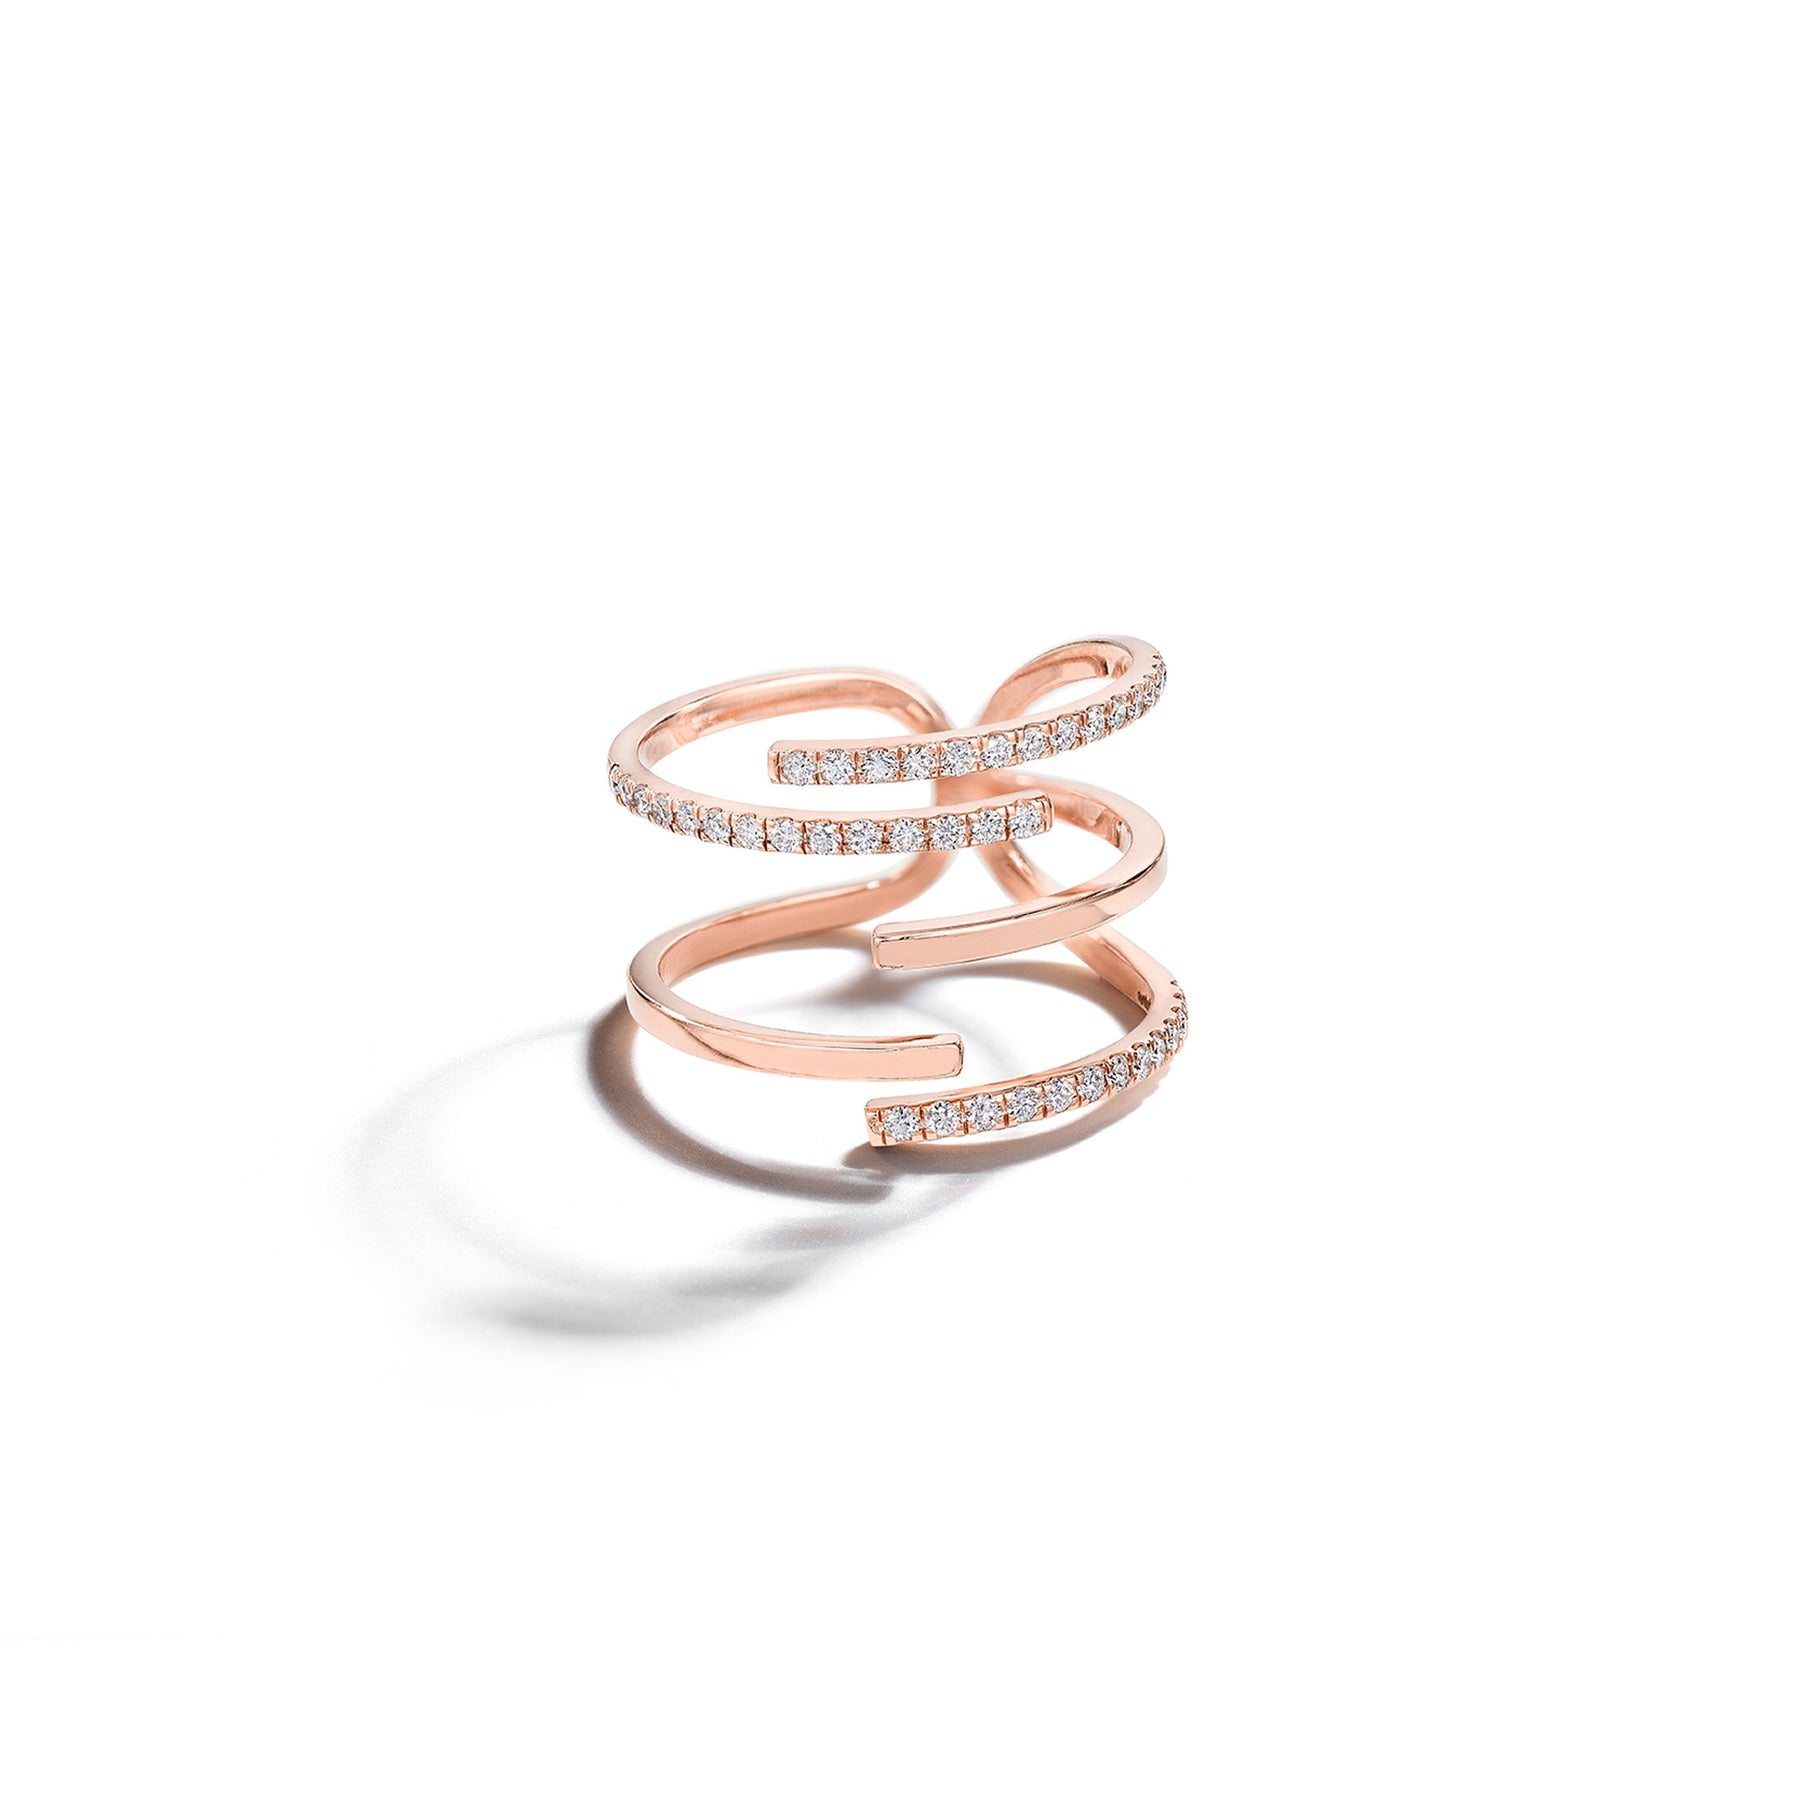 Mimi So Piece Stick Pave Diamond Ring_18k Rose Gold